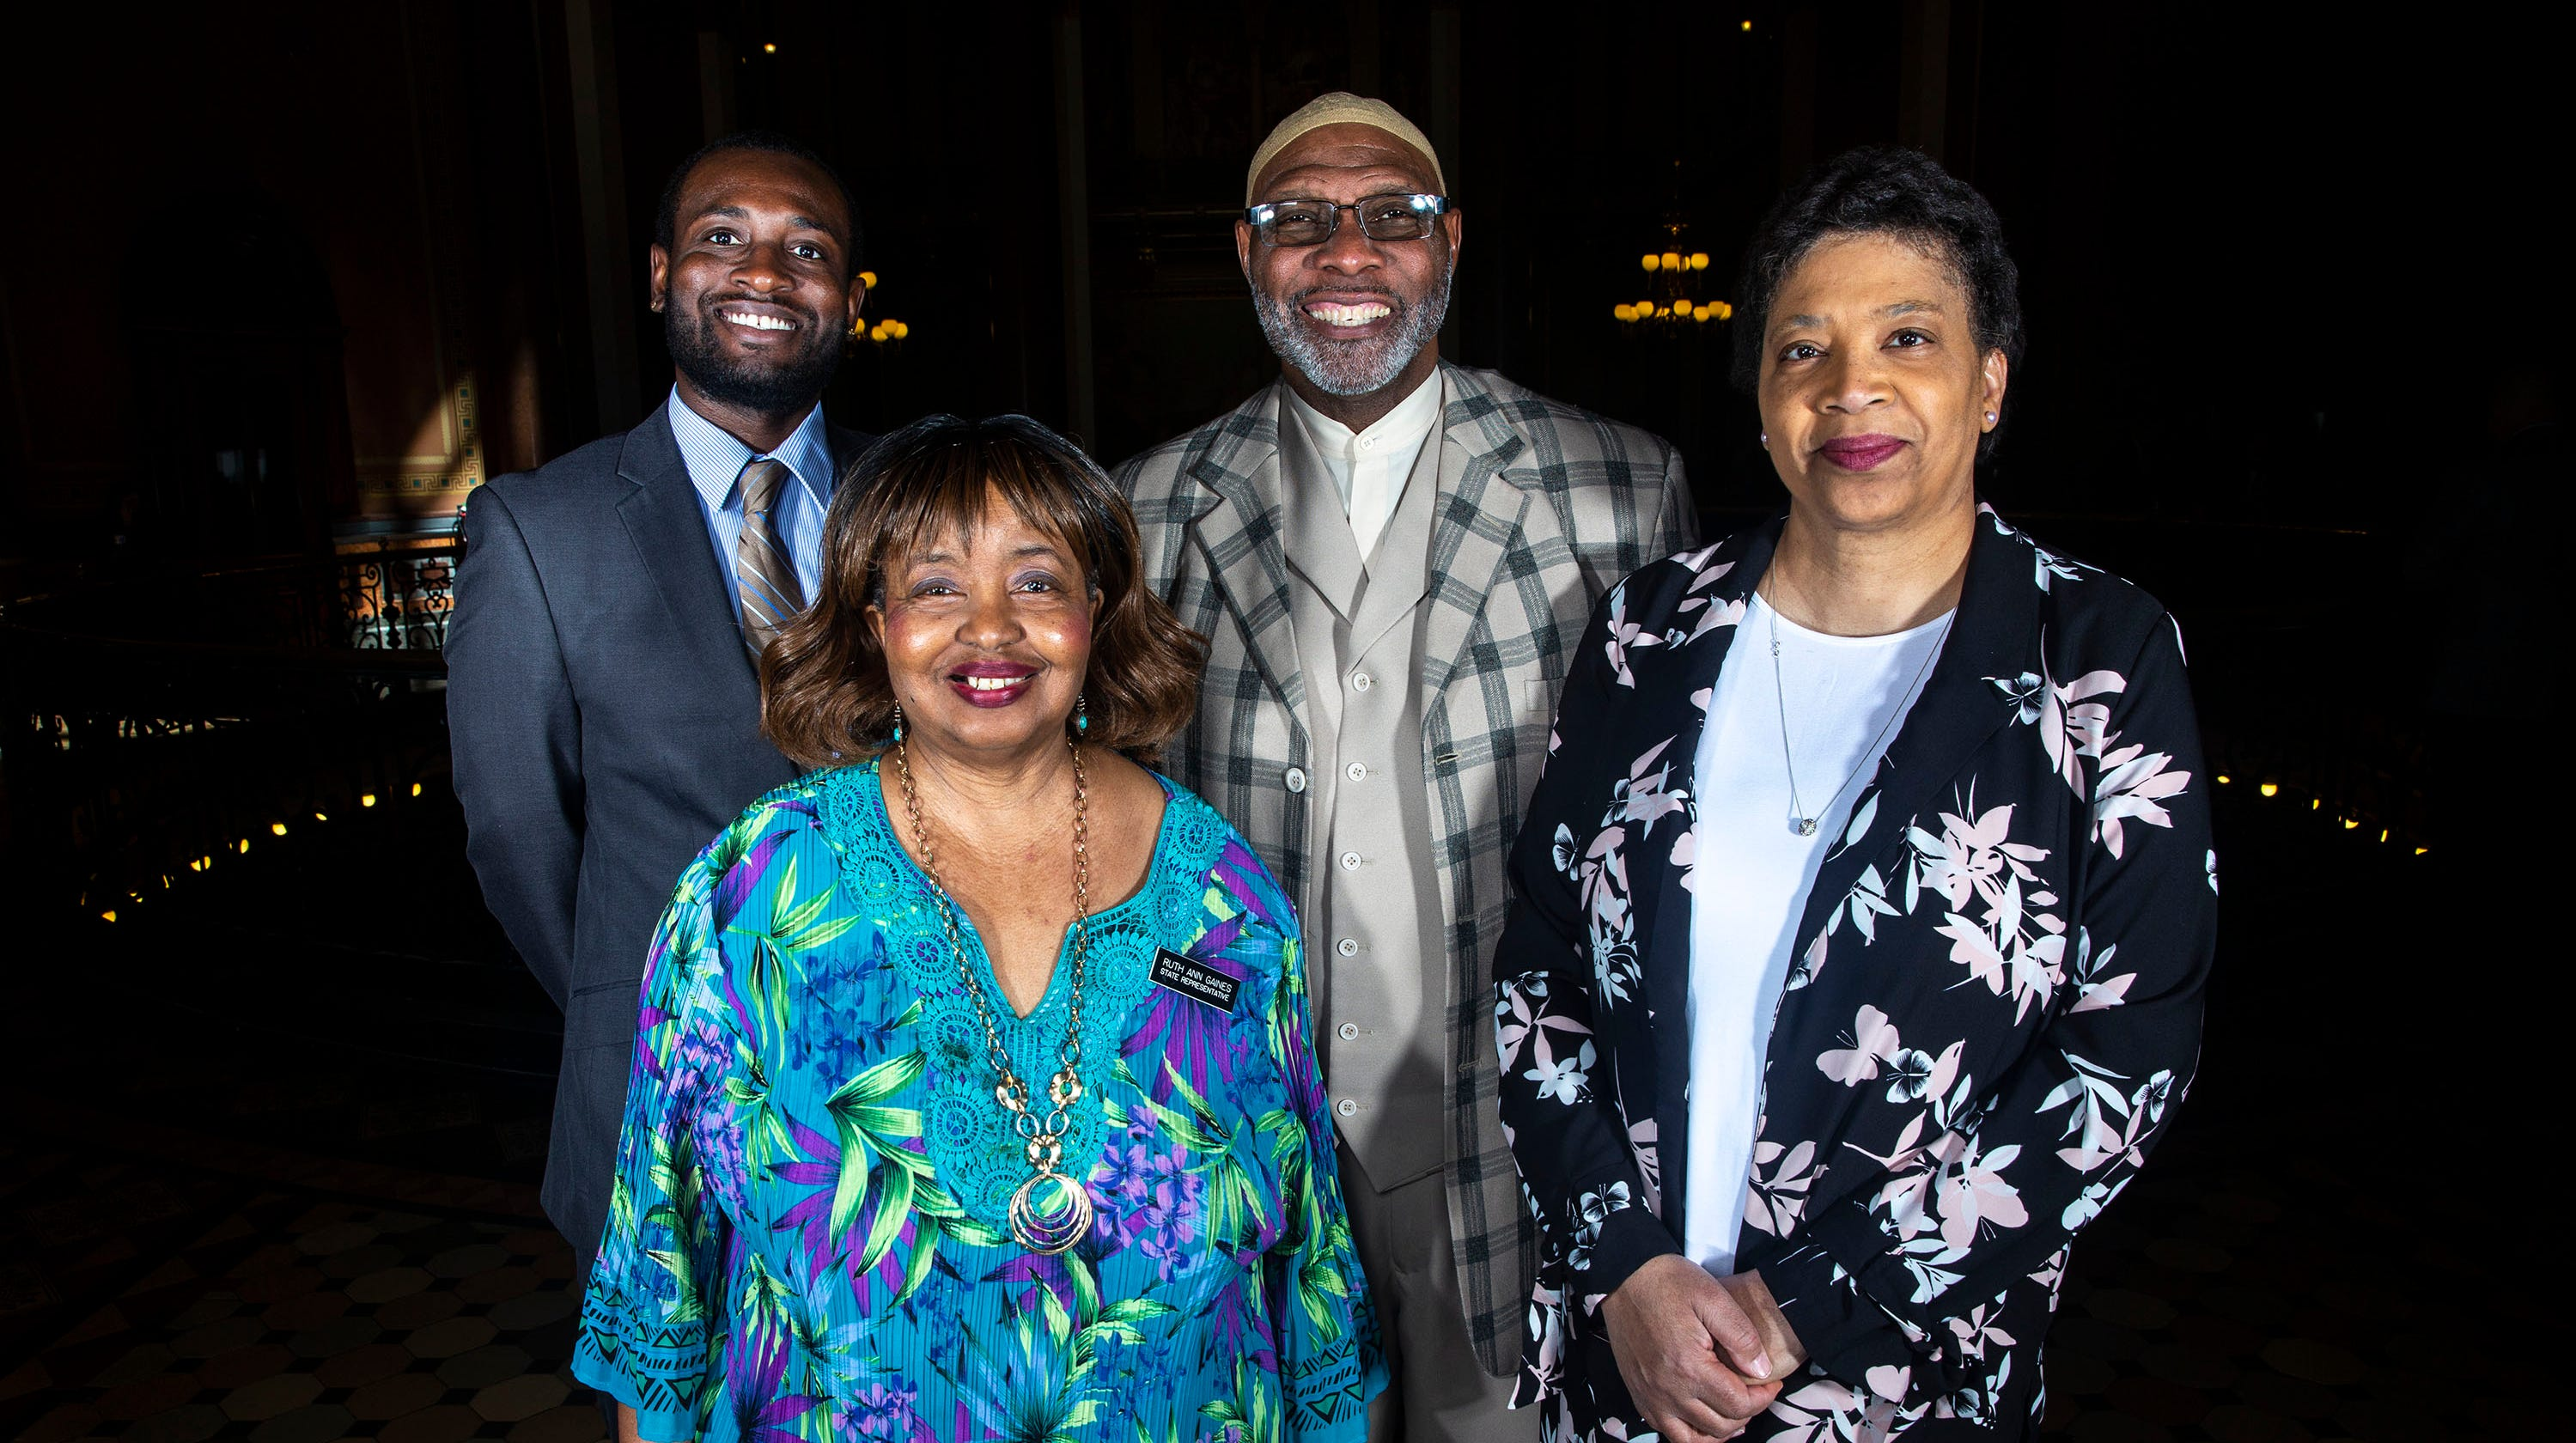 'No reason we can't have more people here': Iowa has just 4 lawmakers of color at Capitol